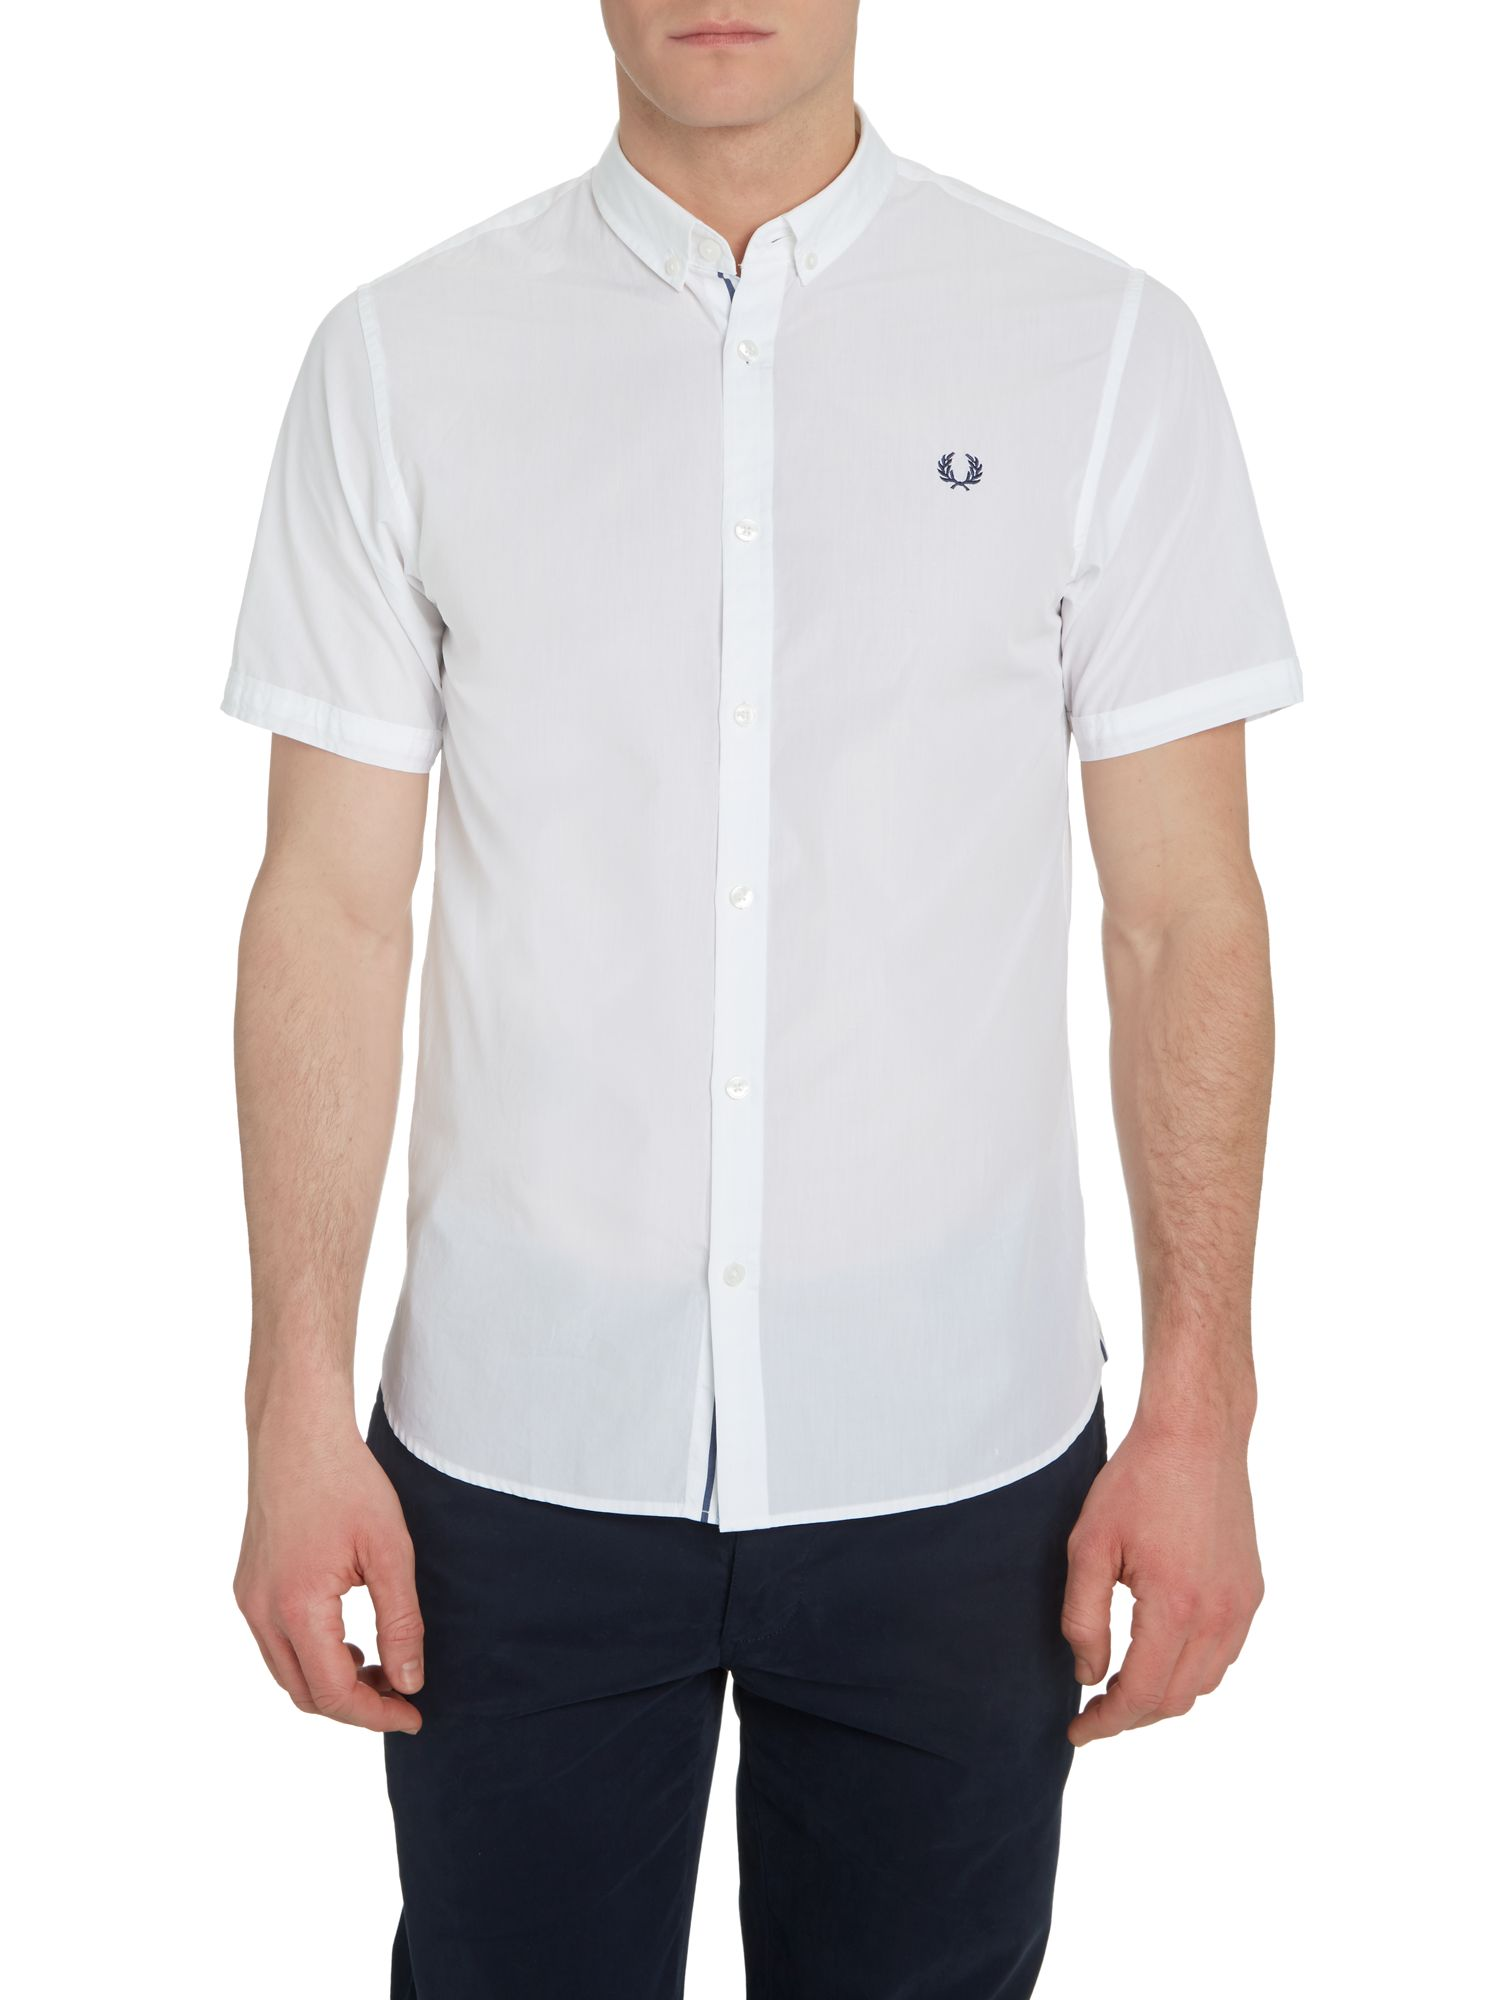 Short sleeved end on end shirt